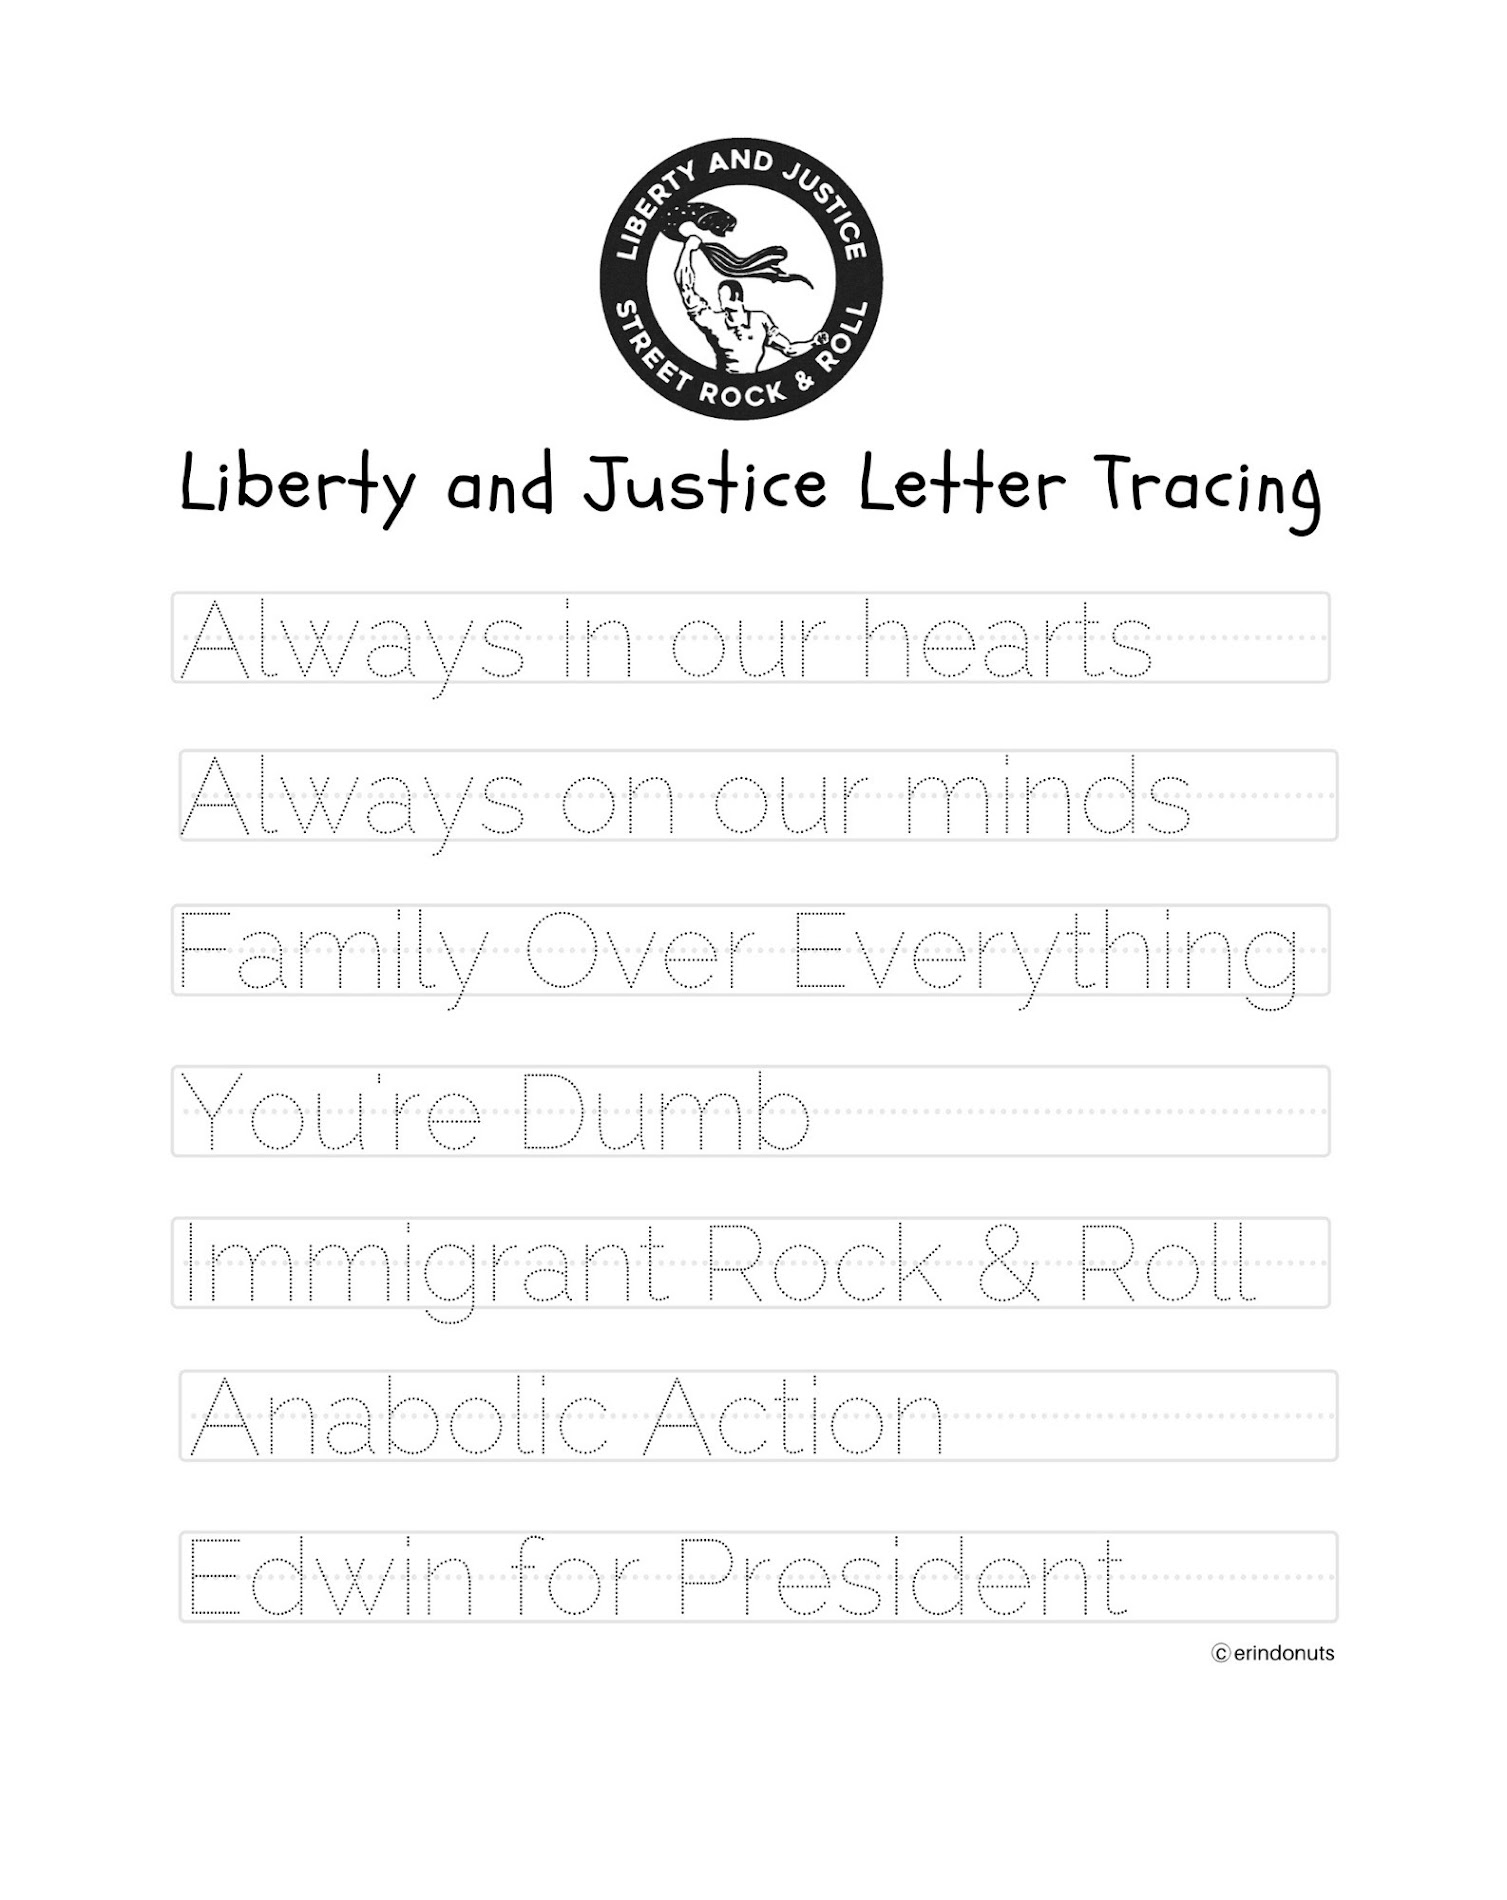 Liberty Justice Share Socially Distant Remotely Recorded Punk Oi Cover Of Robyn S Dancing On My Own Liberty Justice Letter Tracing